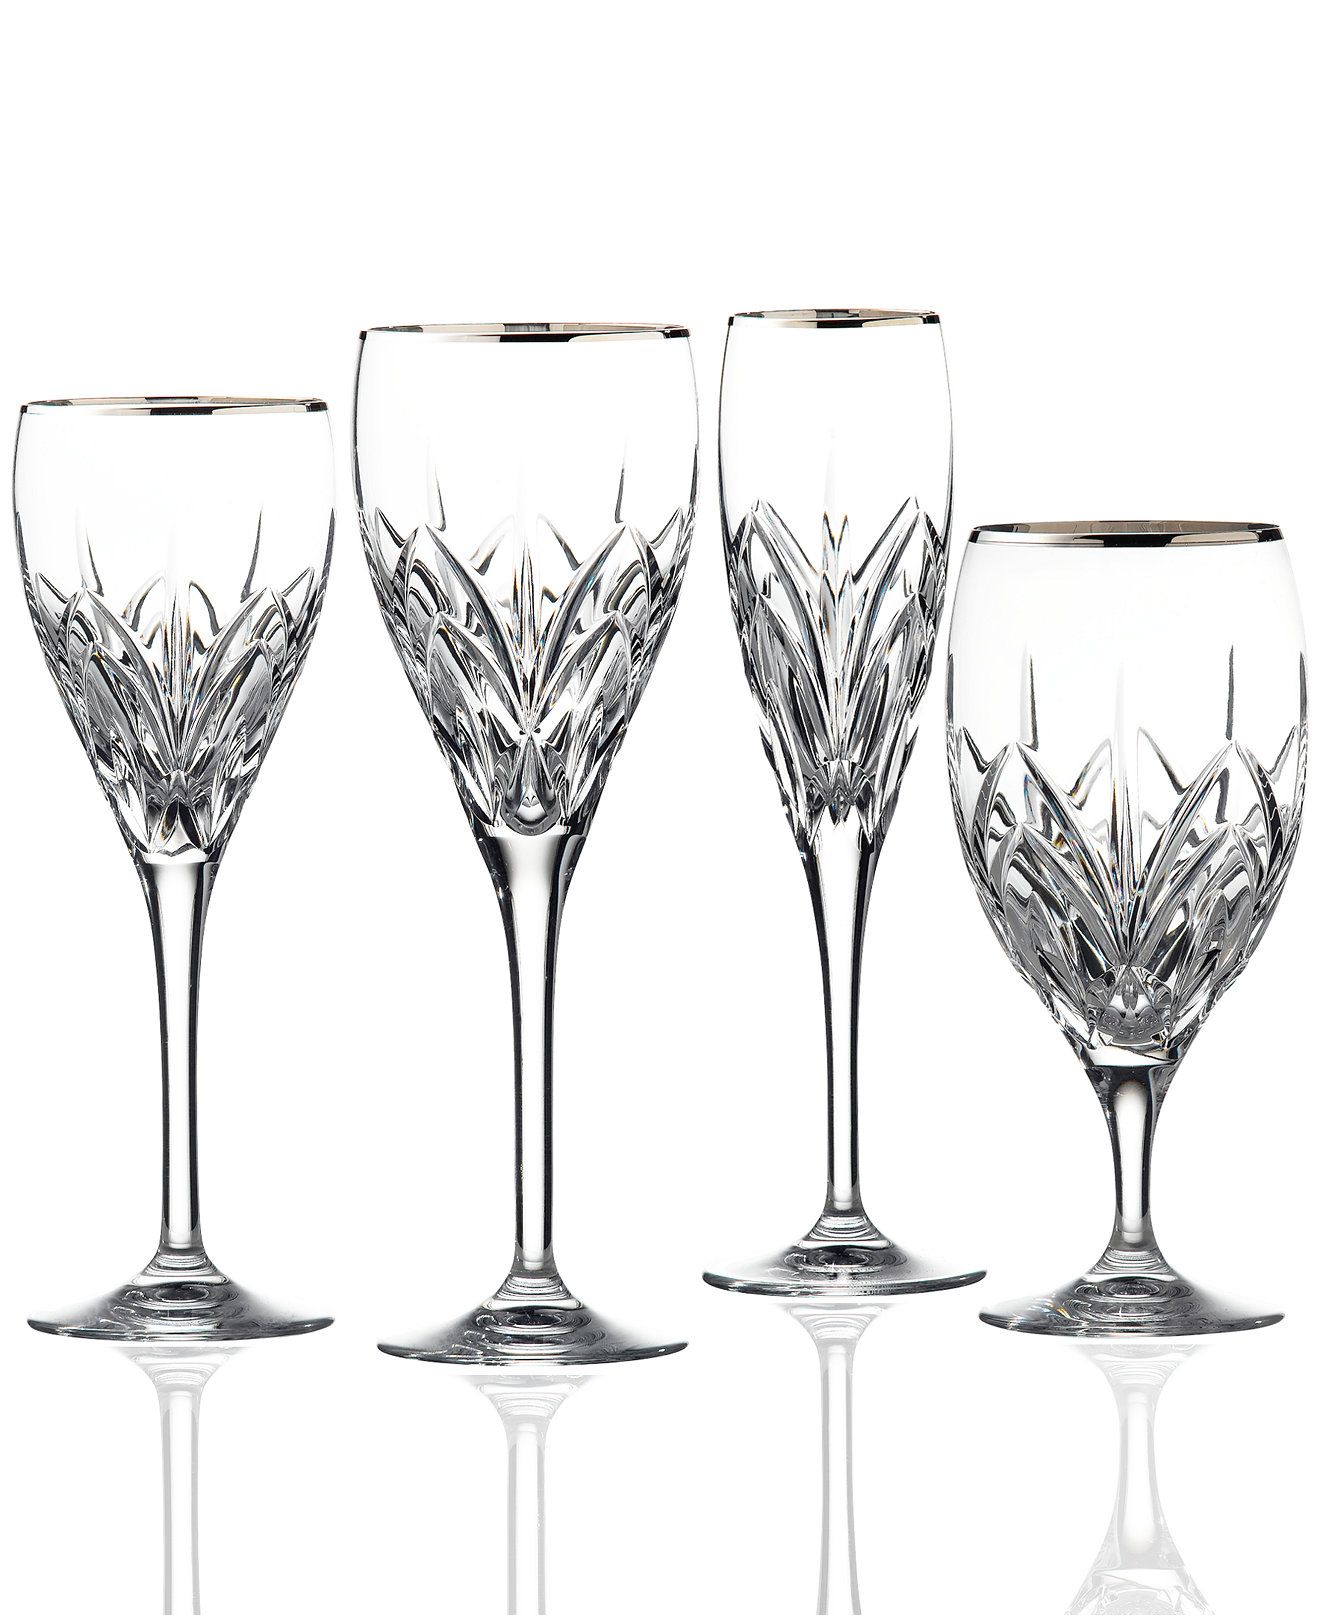 Fantastic Waterford Crystal Patterns for Dining Ware Ideas: Magnificent Waterford Crystal Patterns For Dining Sets Ideas With Waterford Crystal Glass Patterns